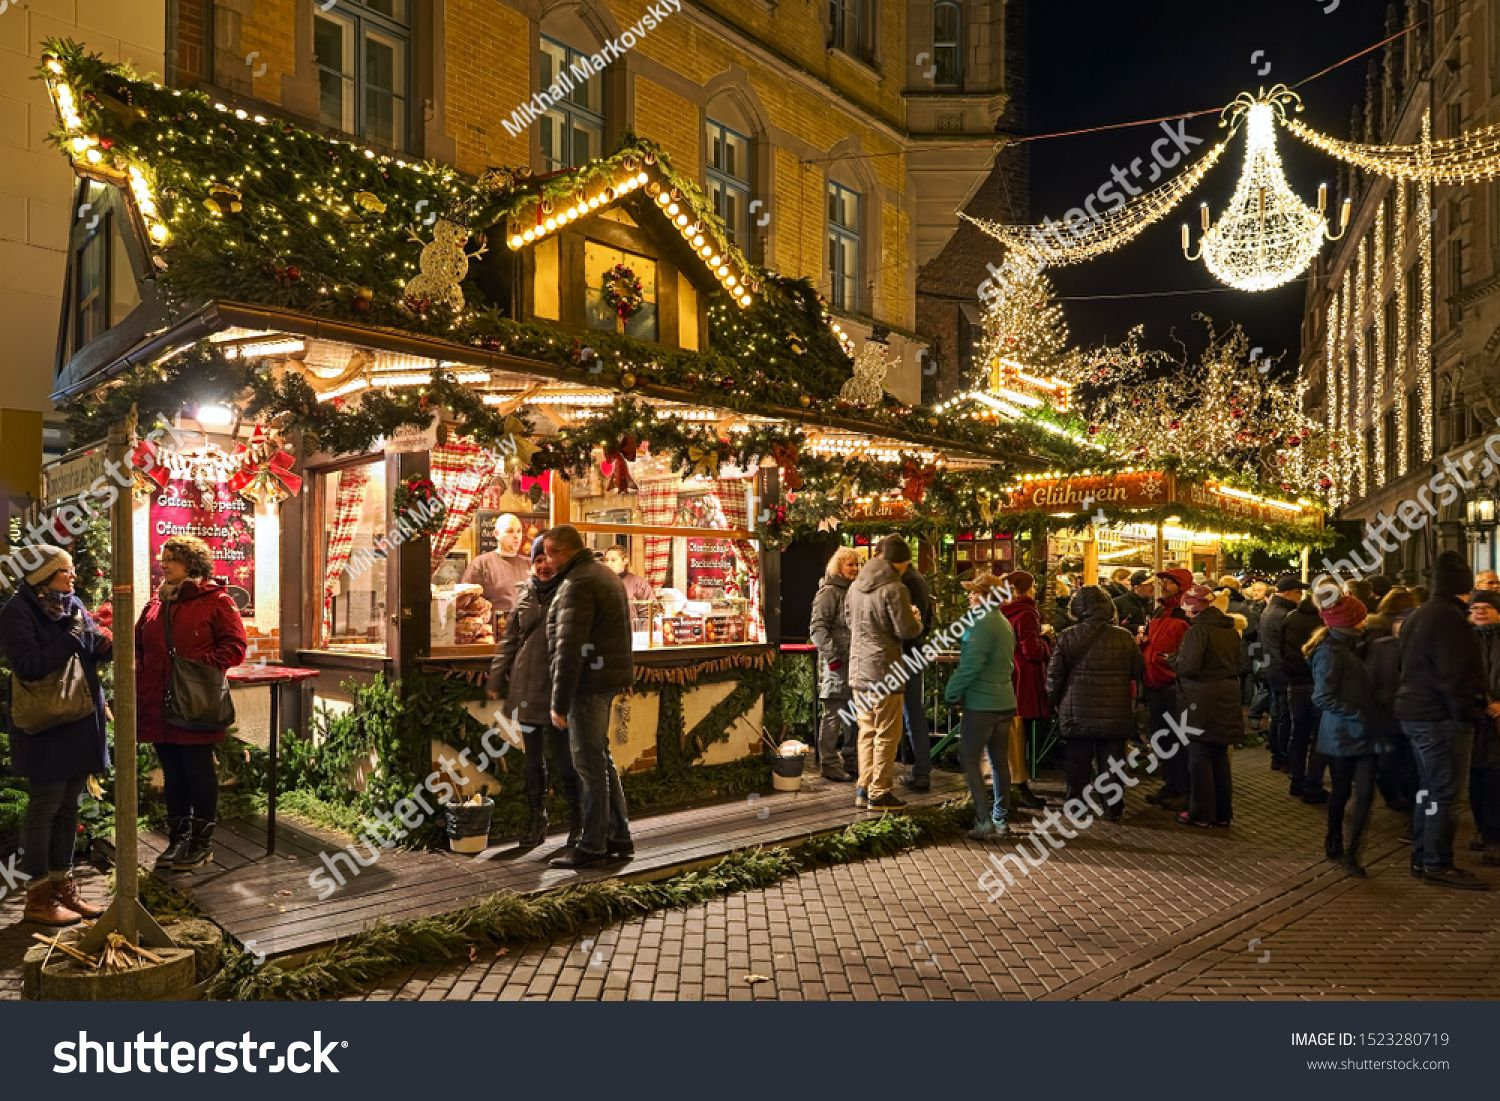 2020 Christmas Marketplace, December 8 HANNOVER, GERMANY DECEMBER 8, 2018: Stalls with food and hot